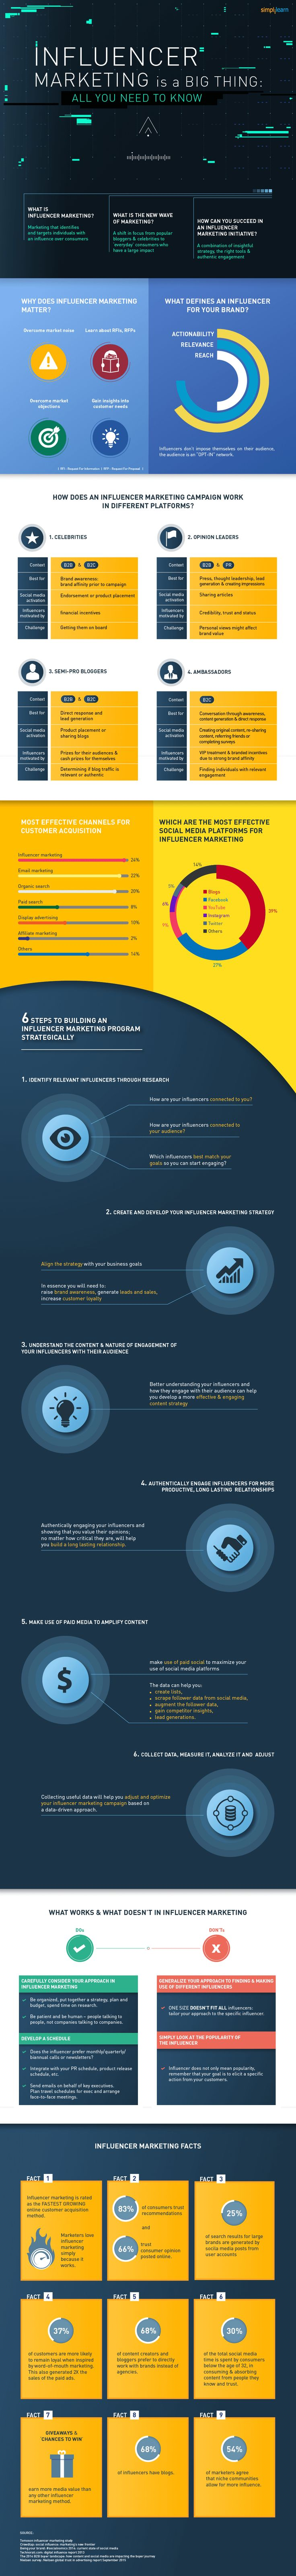 Digital-Marketing-Influencer-Marketing-is-a-Big-Thing-All-you-Need-to-Know-infographic-Marketing Digital Marketing : Influencer marketing is a big thing: All you need to know - infographic